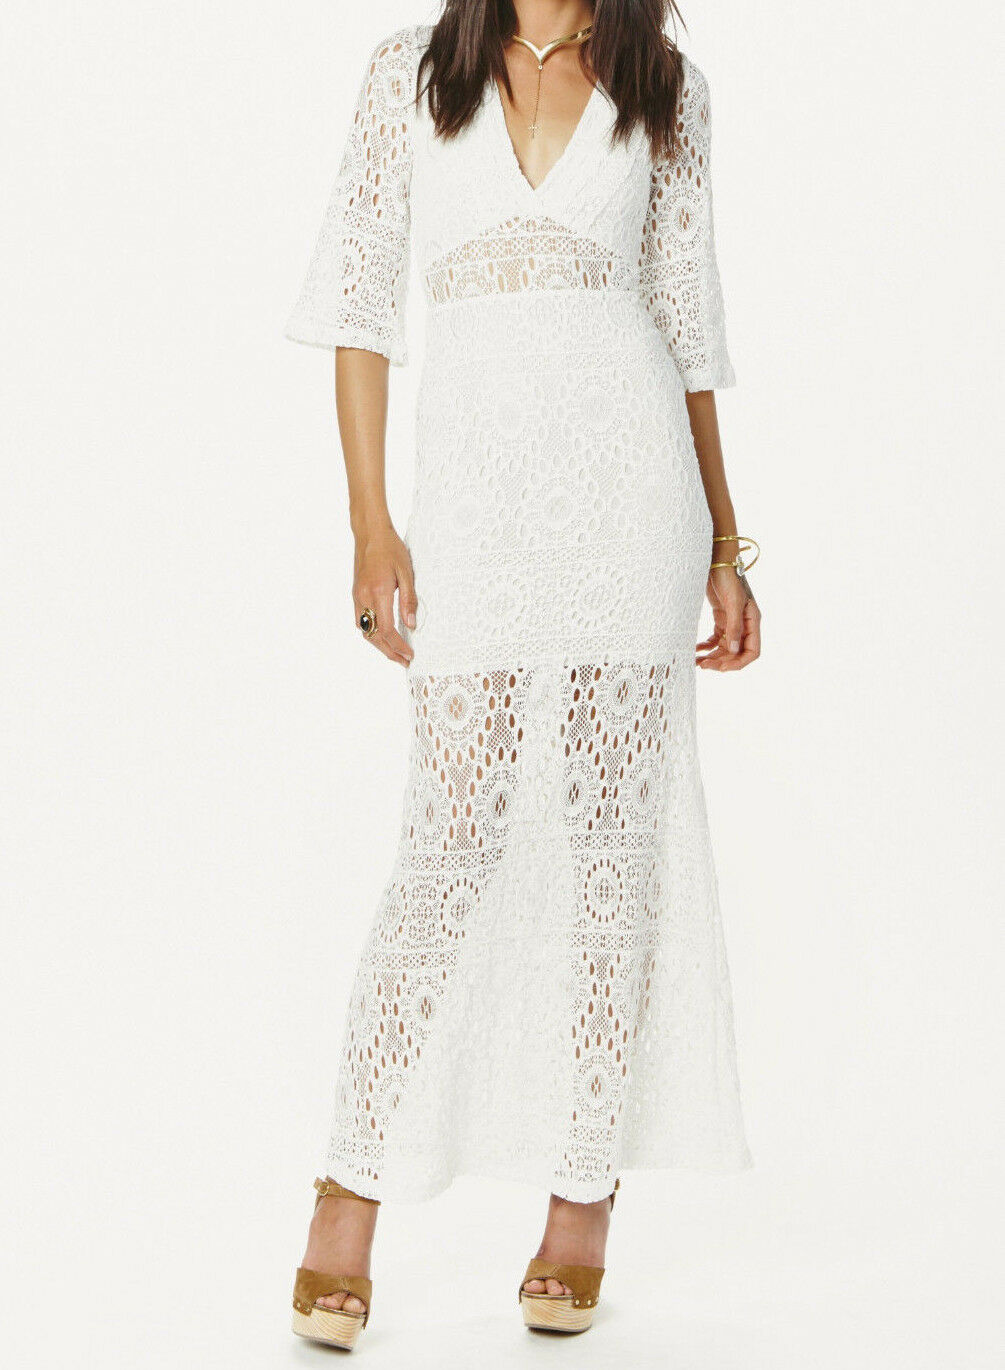 NWD NIGHTCAP WHITE LACE KIMONO MAXI DRESS GOWN 1 XS